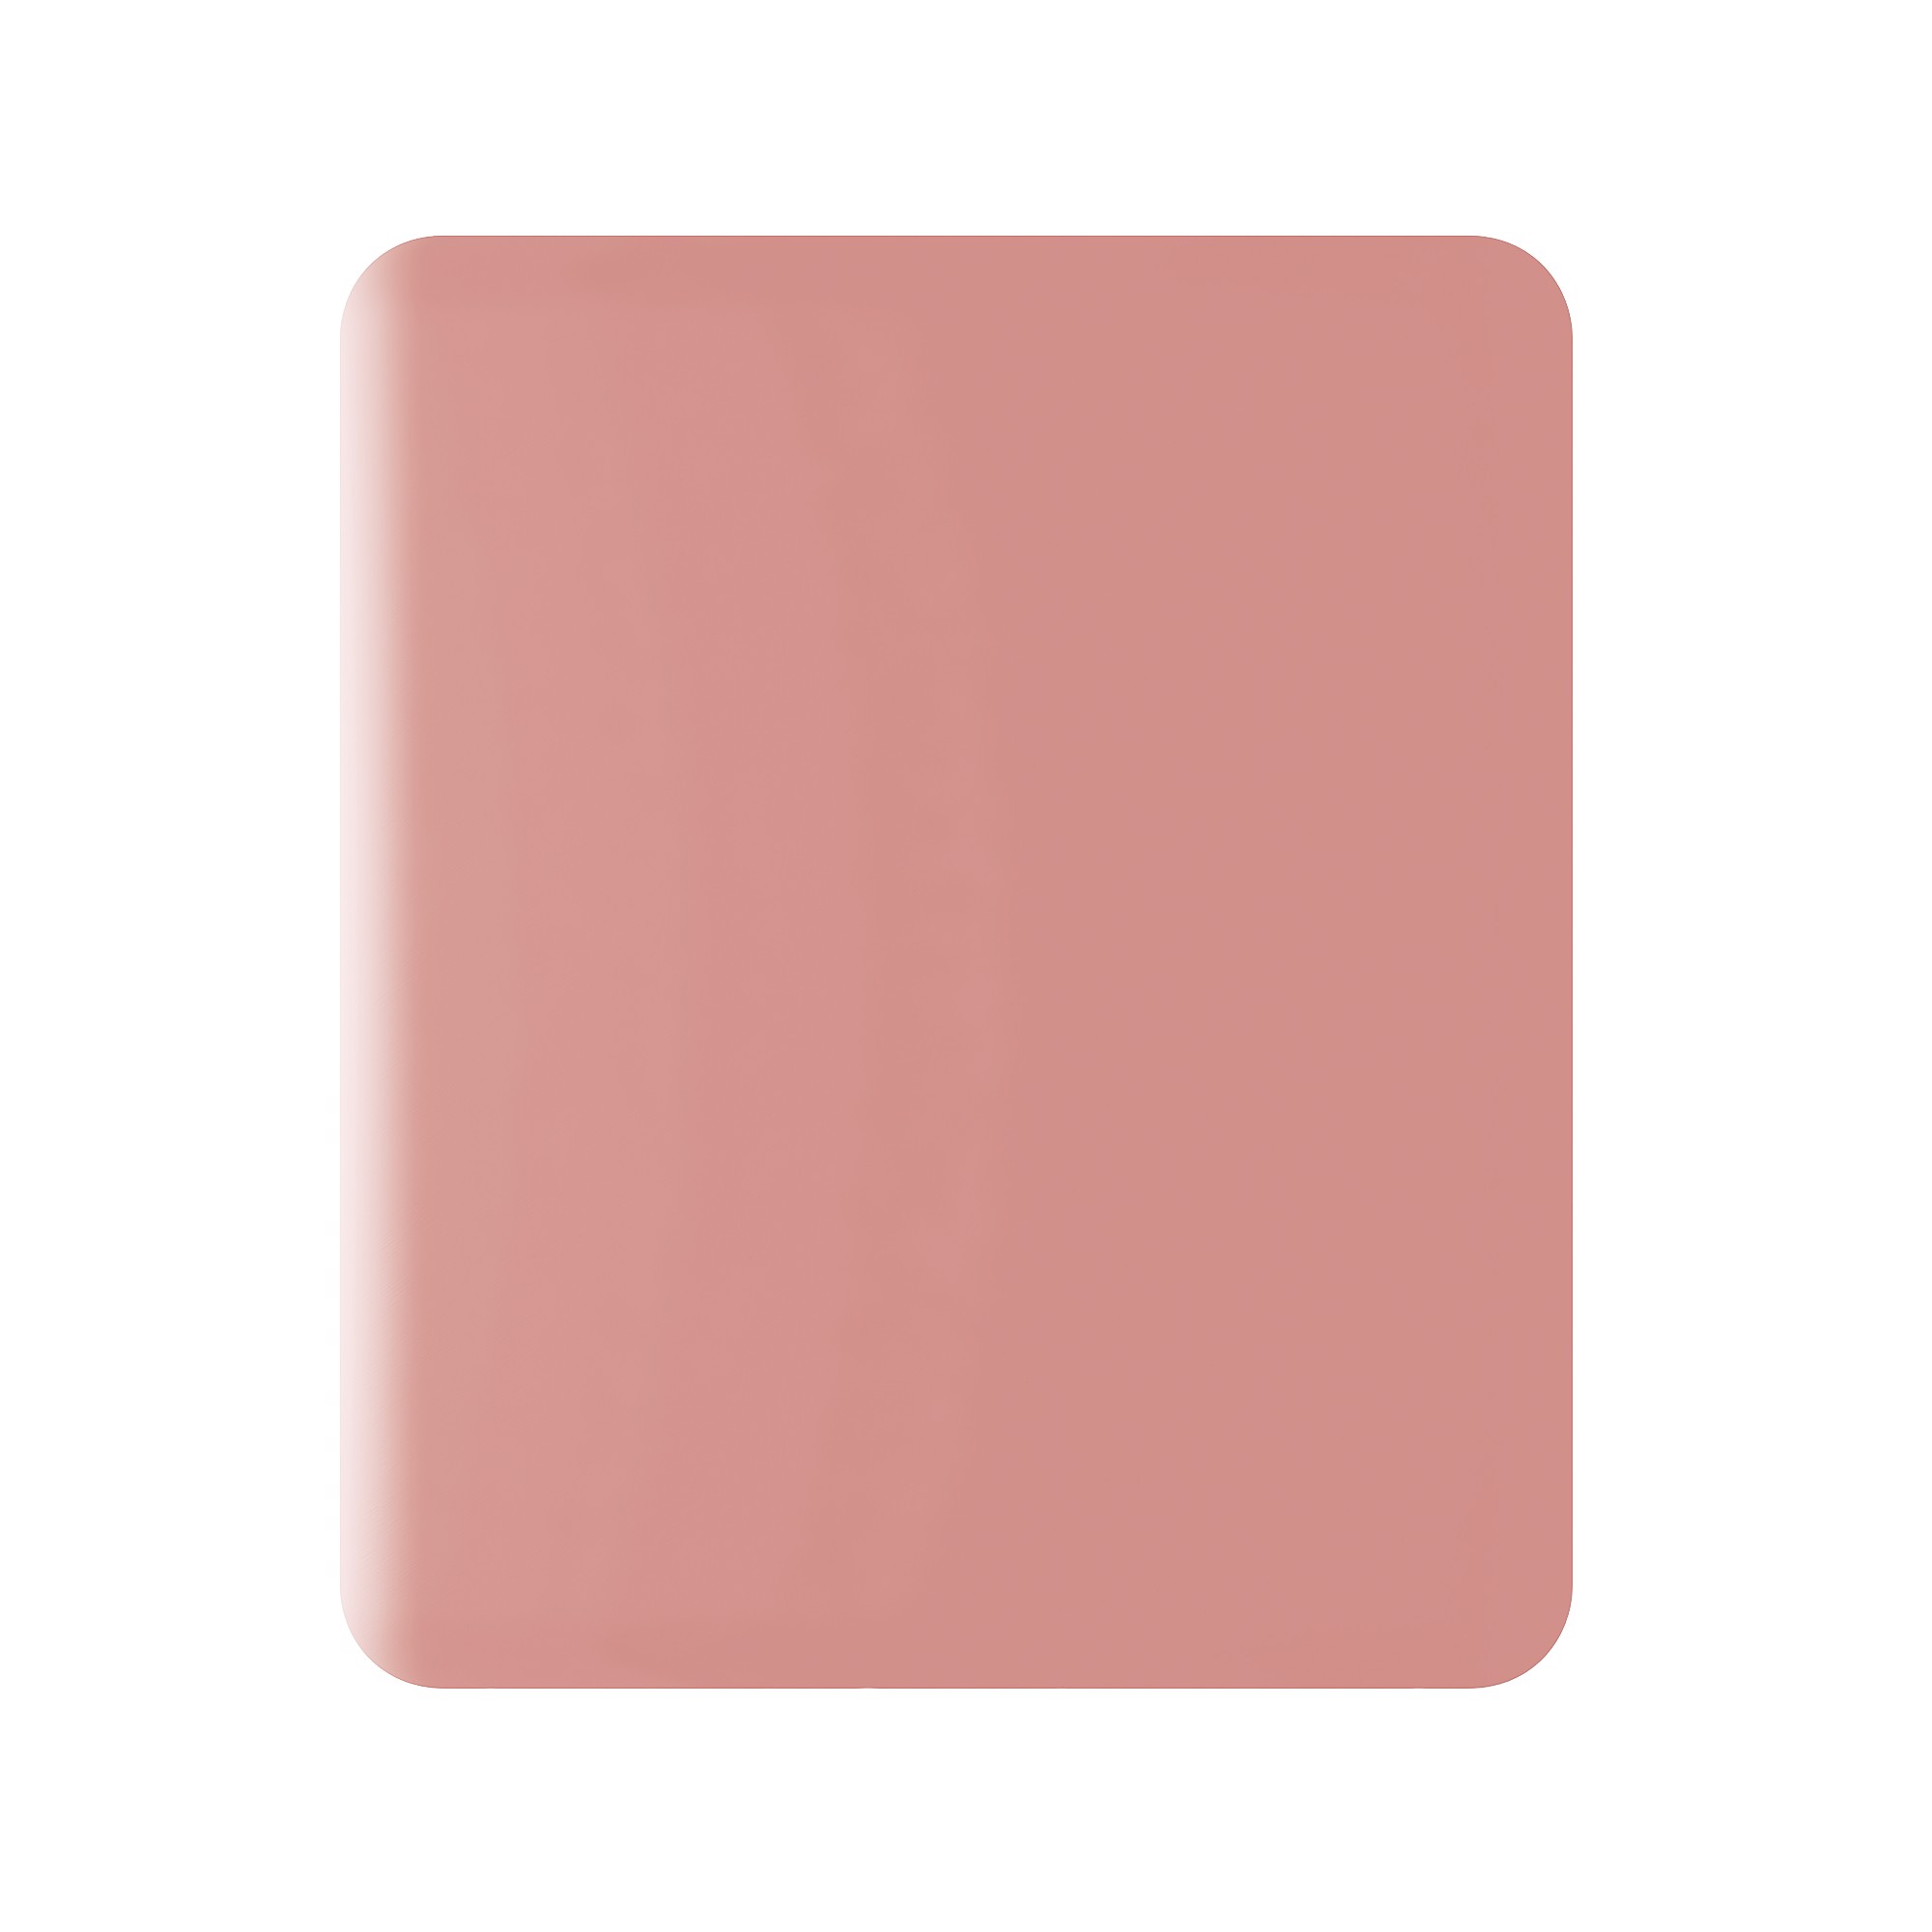 Standard bedsheet 08 Light pink